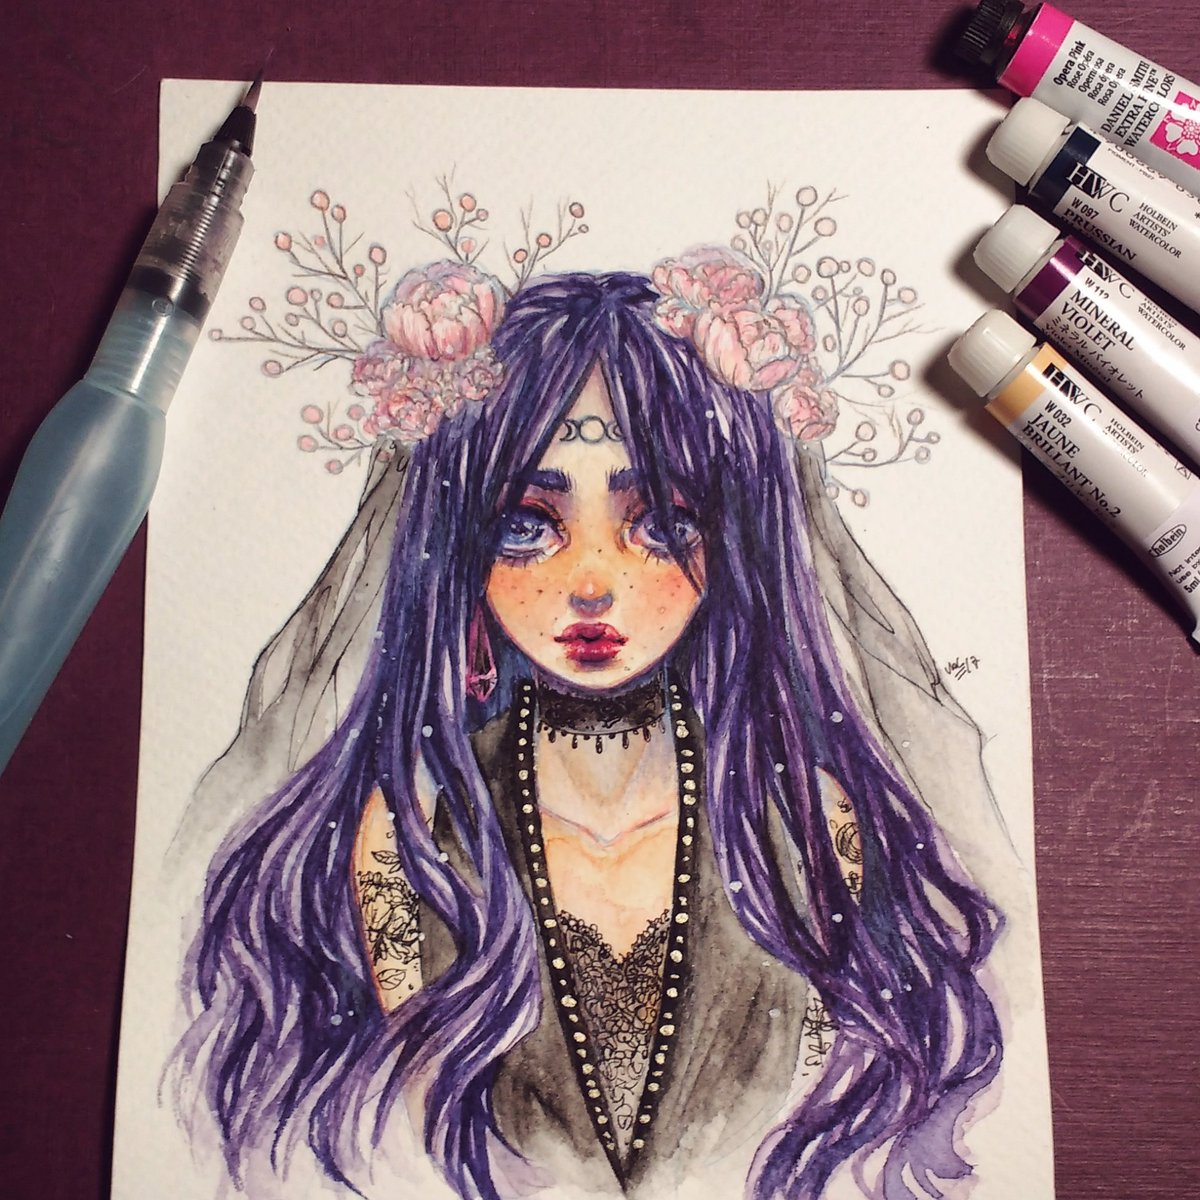 Moon Bride Sketch  #watercolor #Watercolour #Paintings #painting #artwork #witches #drawing #illustration #portrait #flowers #femaleartist<br>http://pic.twitter.com/rbCdiKEuXm